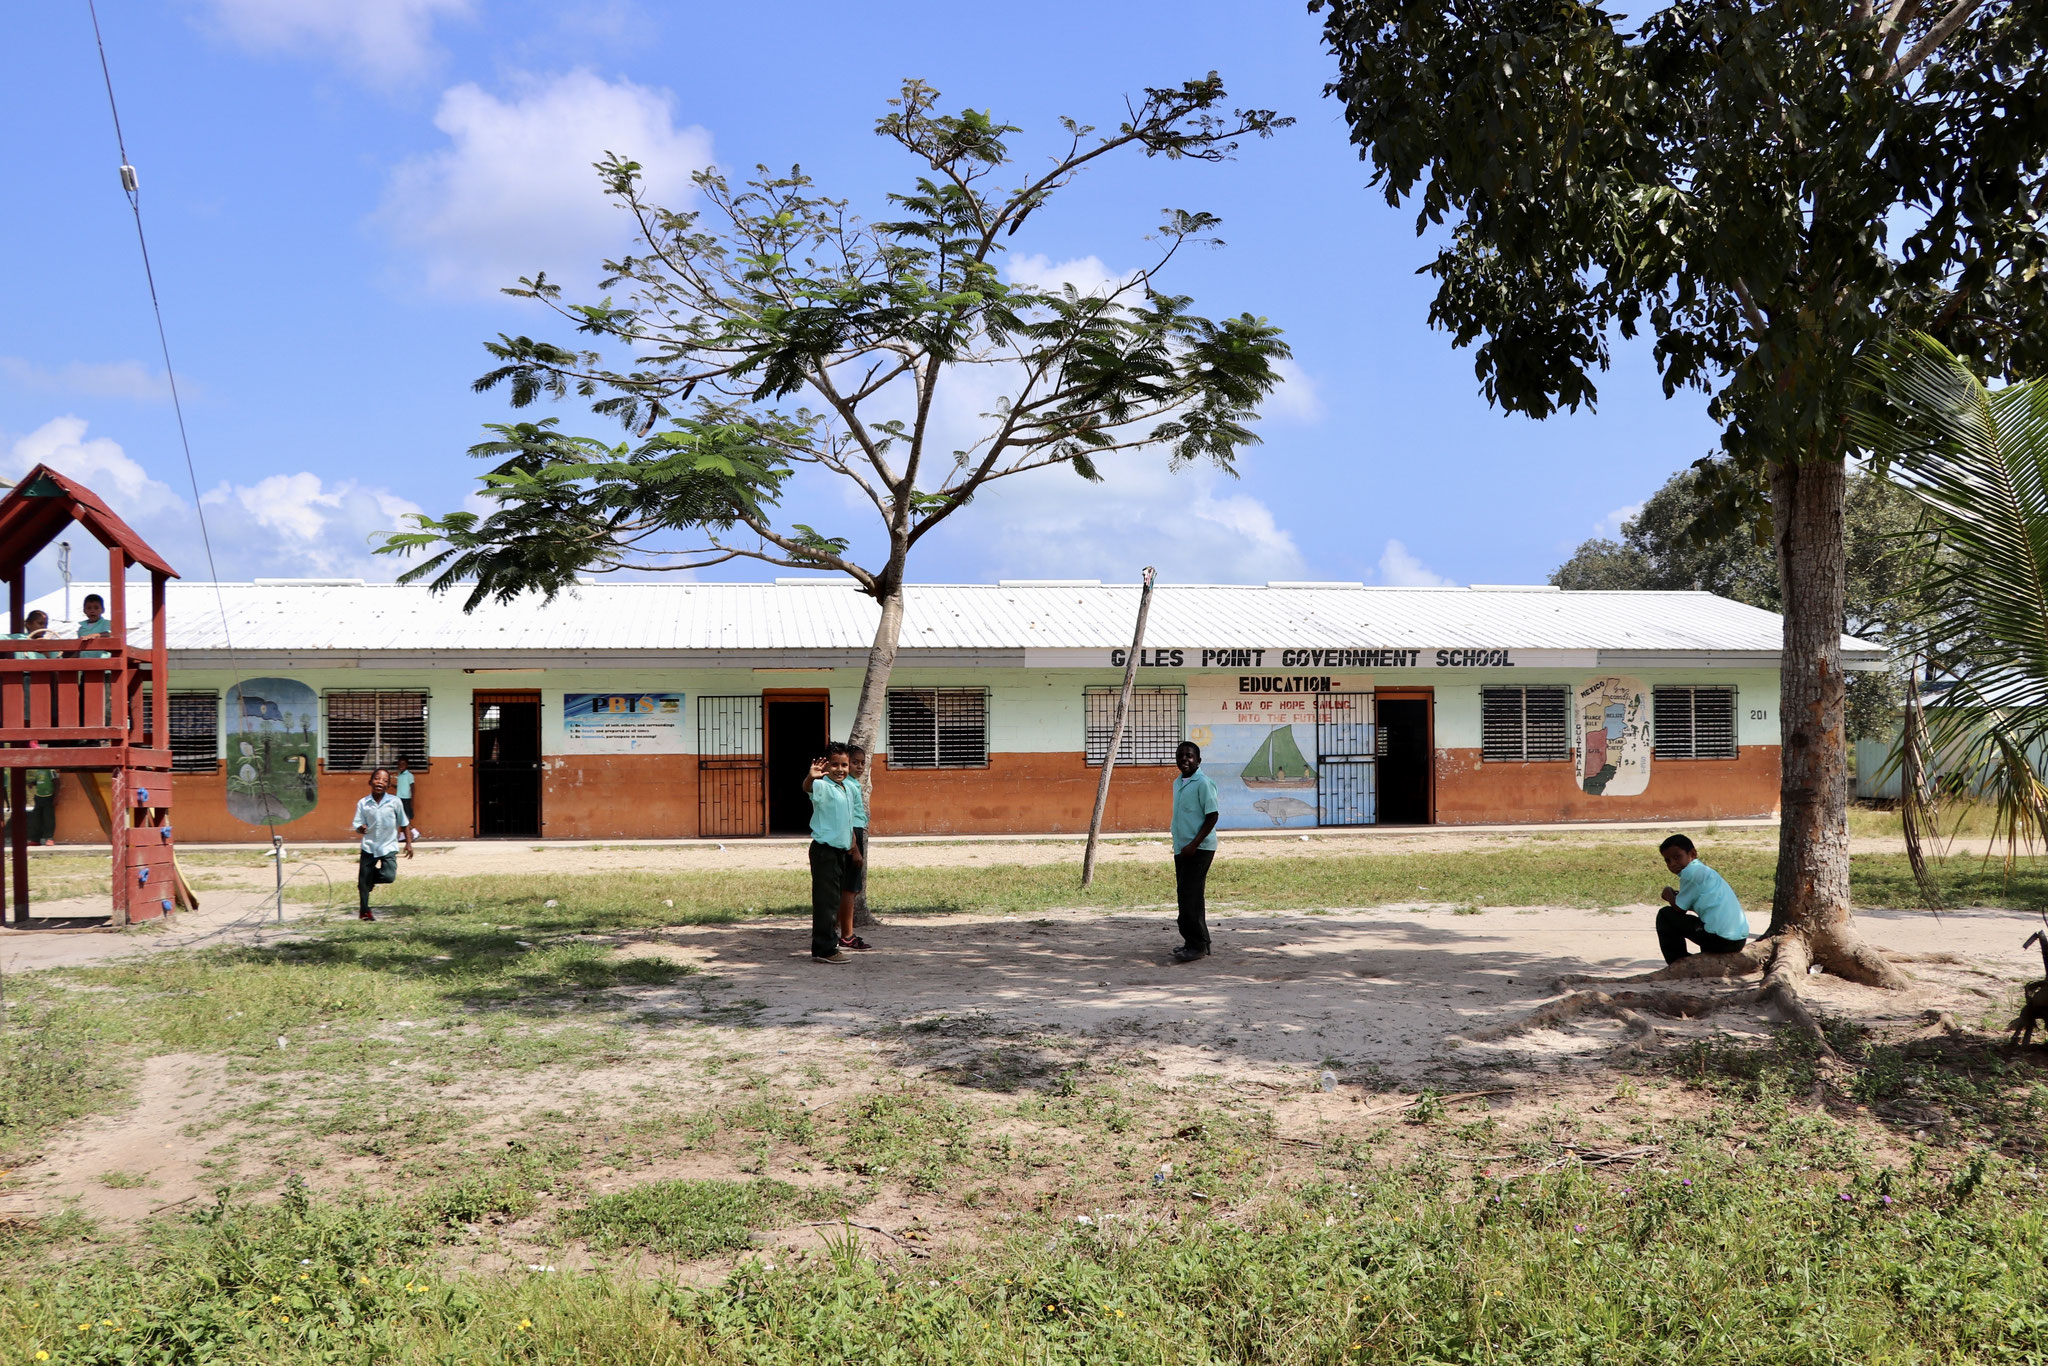 Primary School in Gales Point..